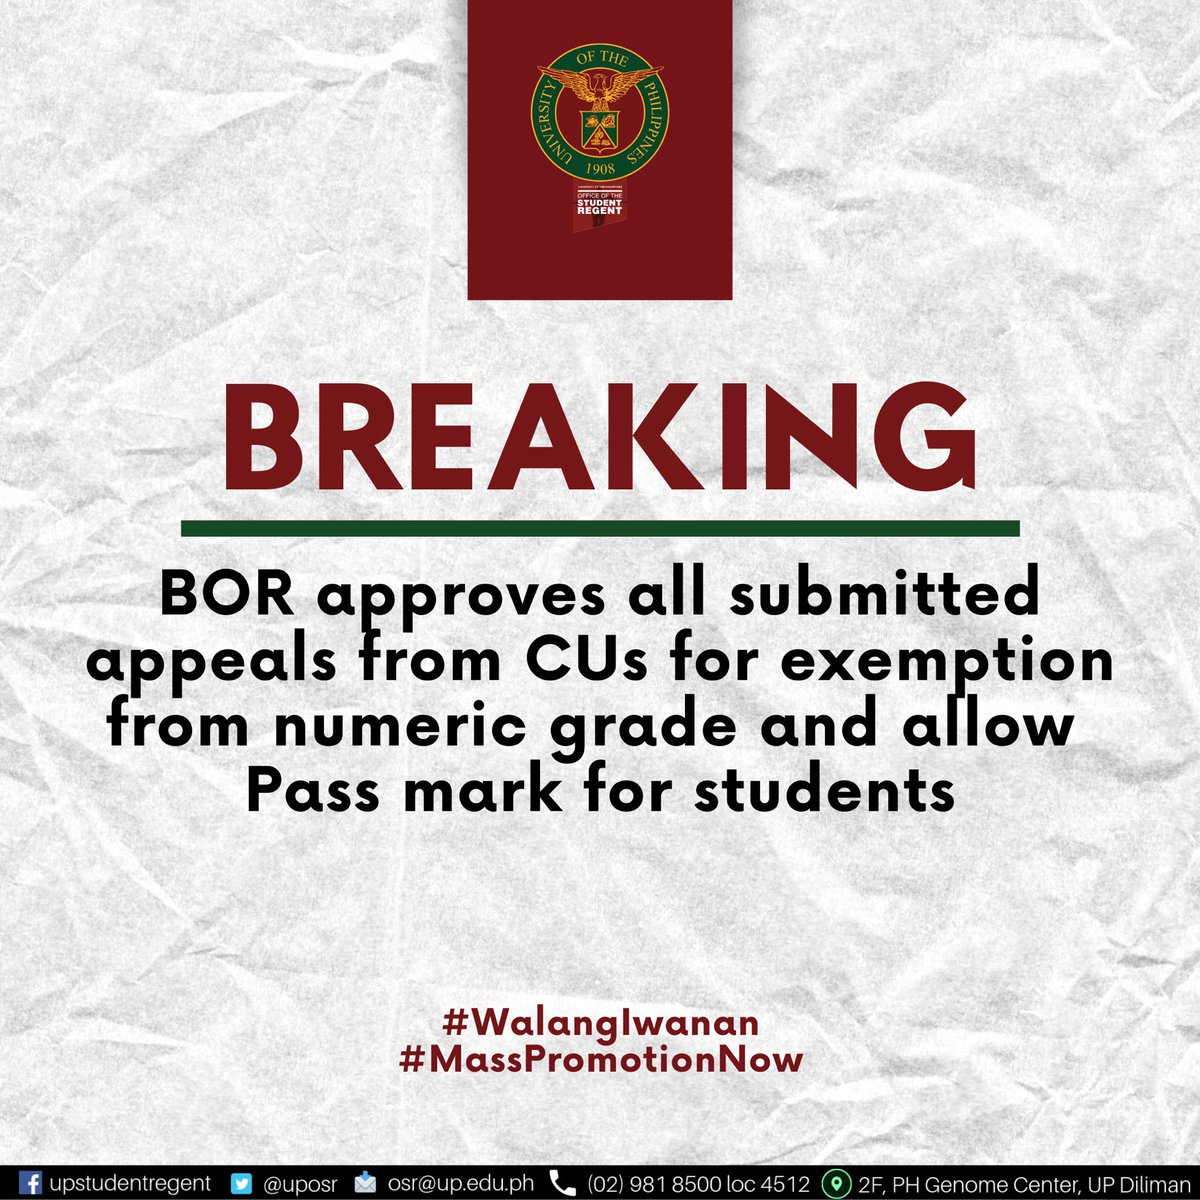 BREAKING: The UP Board of Regents approves all submitted appeals from CUs for exemption from the numeric grade system and allow the issuance of the Pass mark to students.   #WalangIwanan #OneUP #MassPromotionNow https://t.co/pQWx4rQqgG